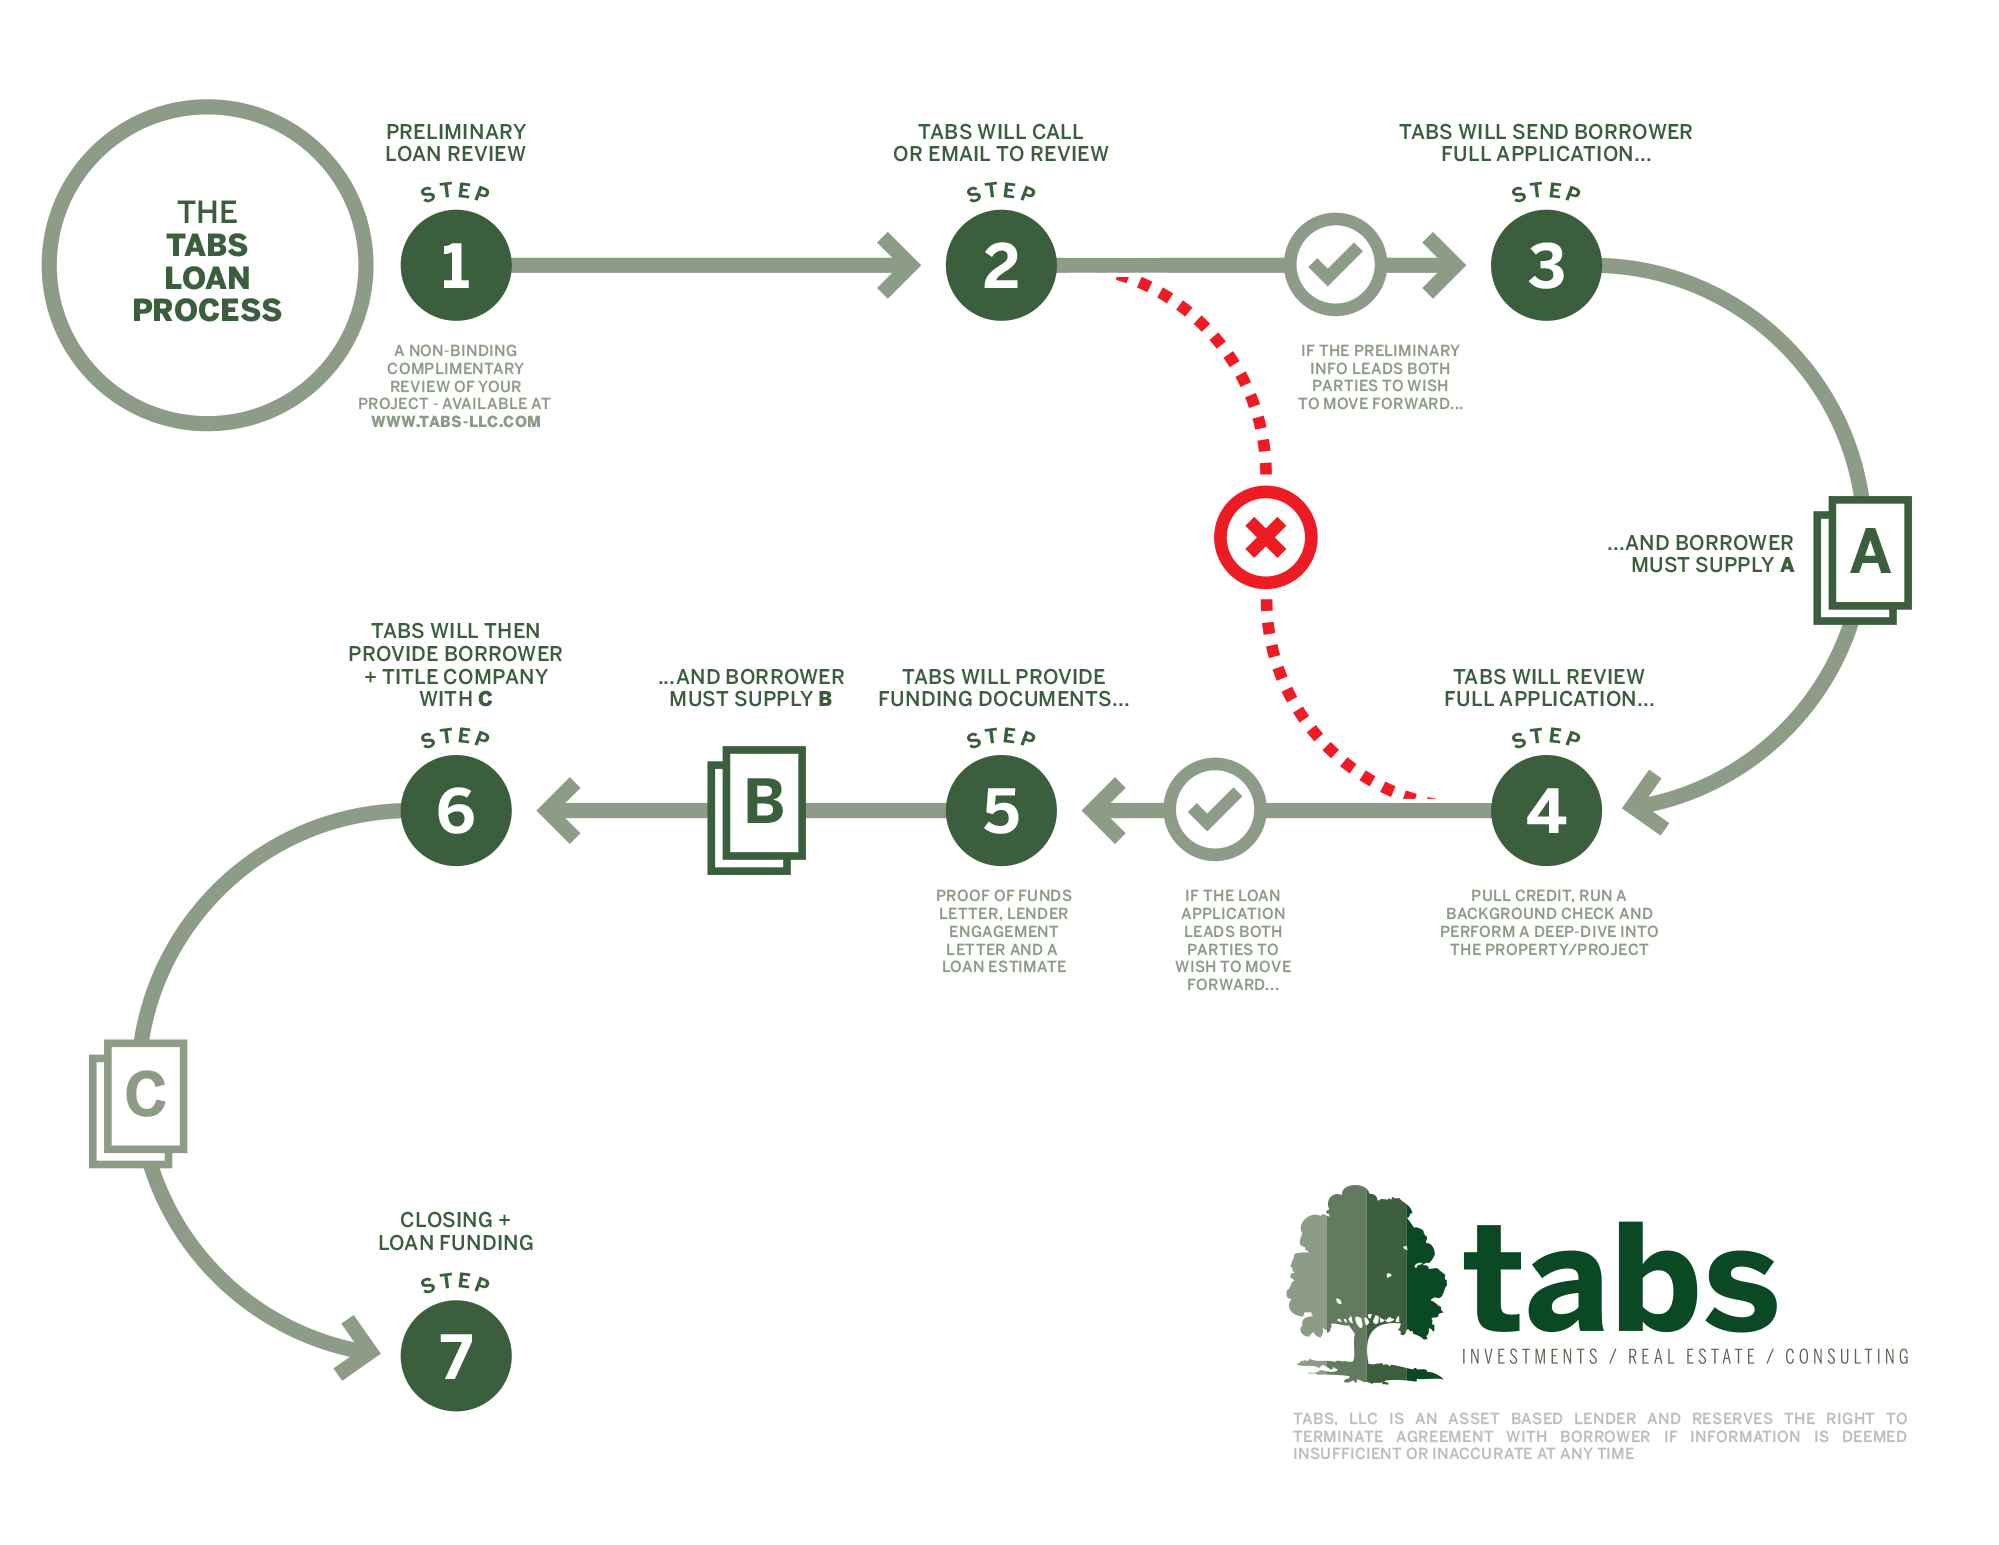 this infographic should visually take you through the process. Please be aware that this process is subject to change by tabs without notice.